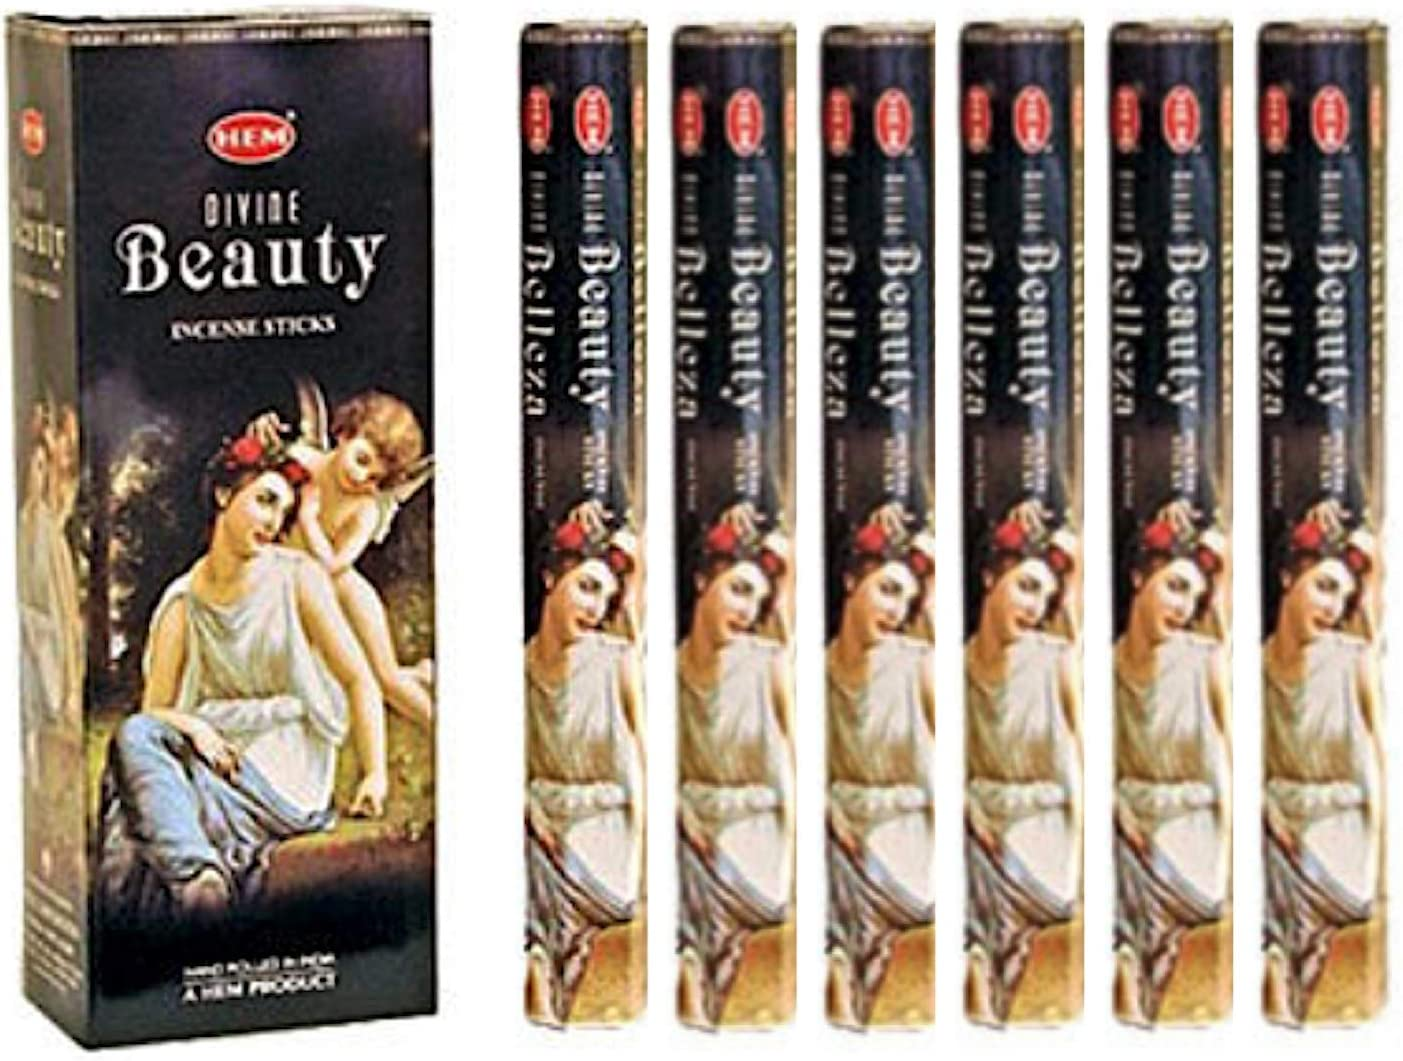 Divine Beauty - Box of Six 20 Gram Tubes - HEM Incense